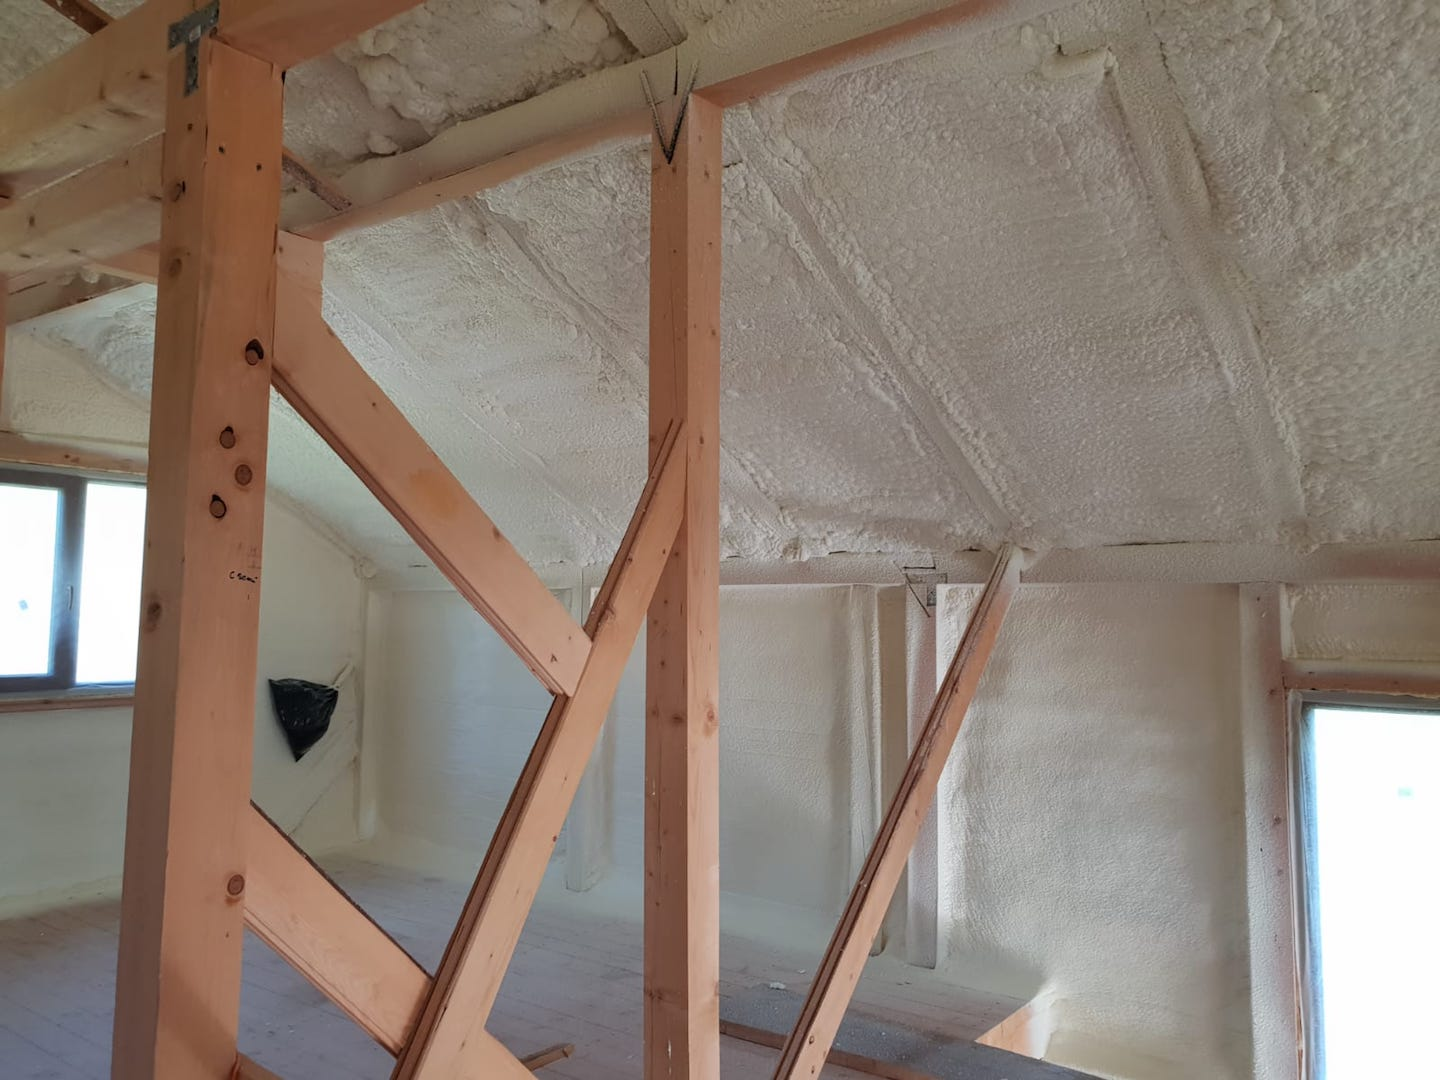 Residential Closed Cell Foam Insulation Cincinnati 02